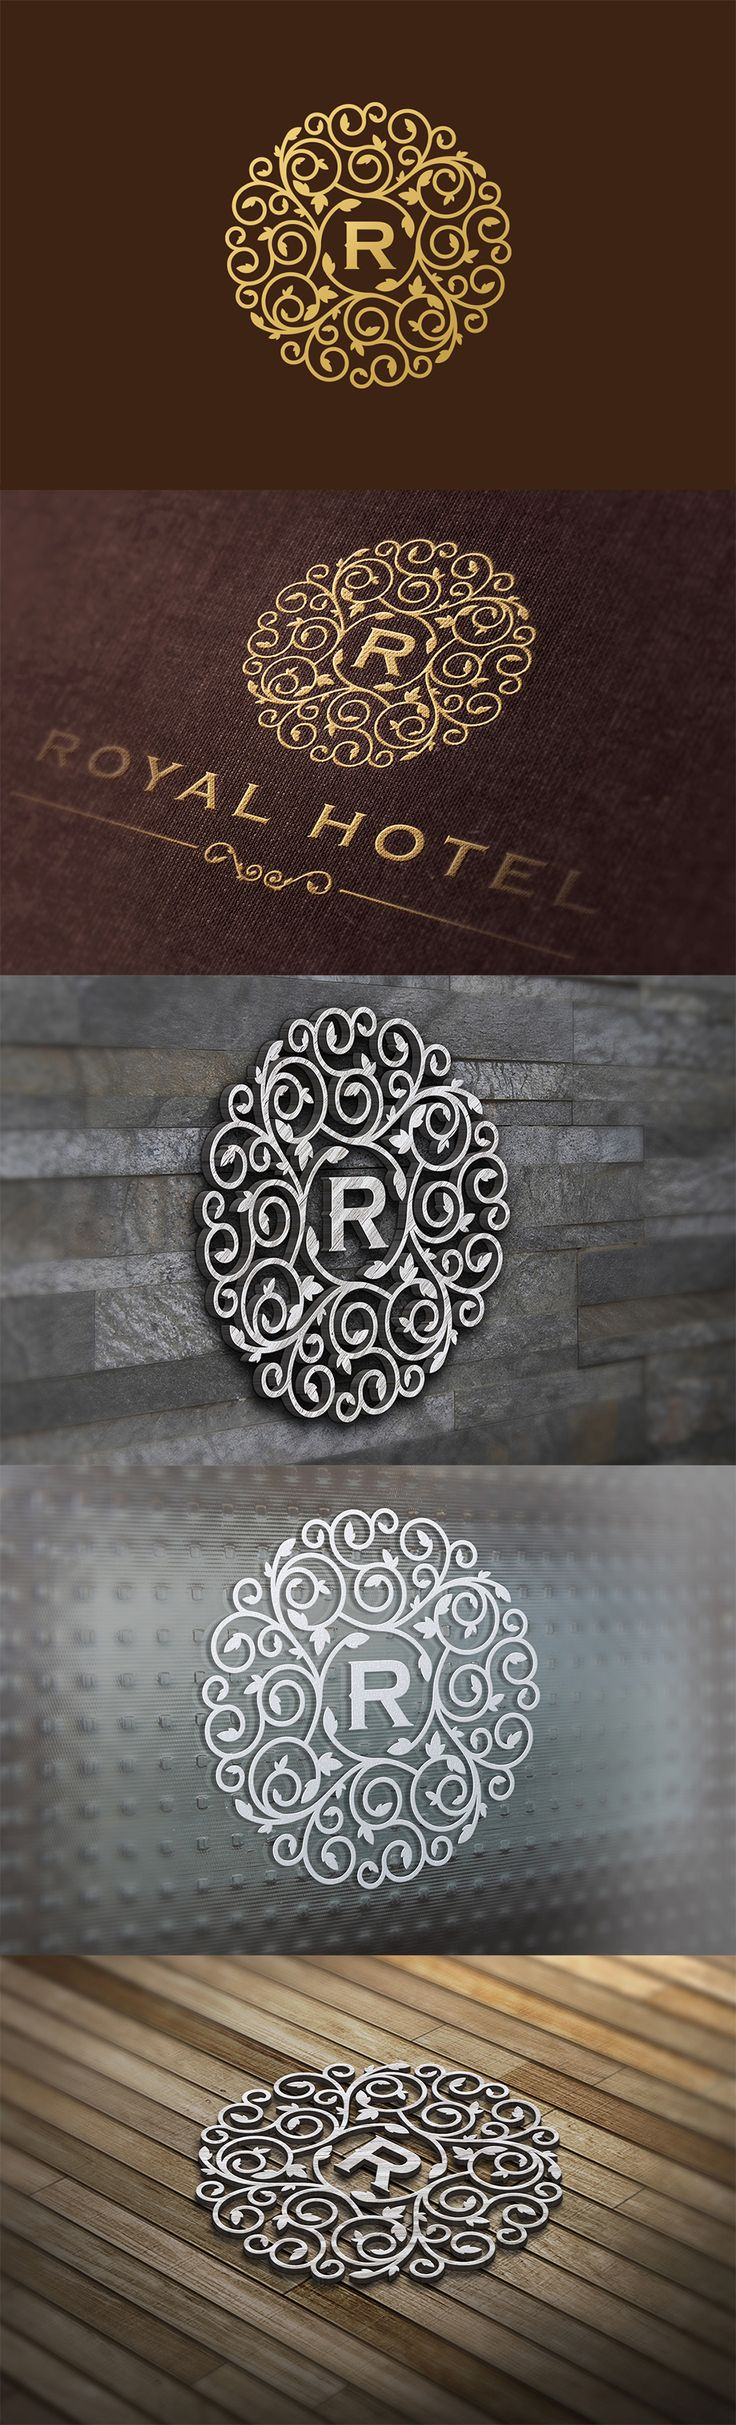 Royal Luxurious Logo Template.                                                                                                                                                                                 More